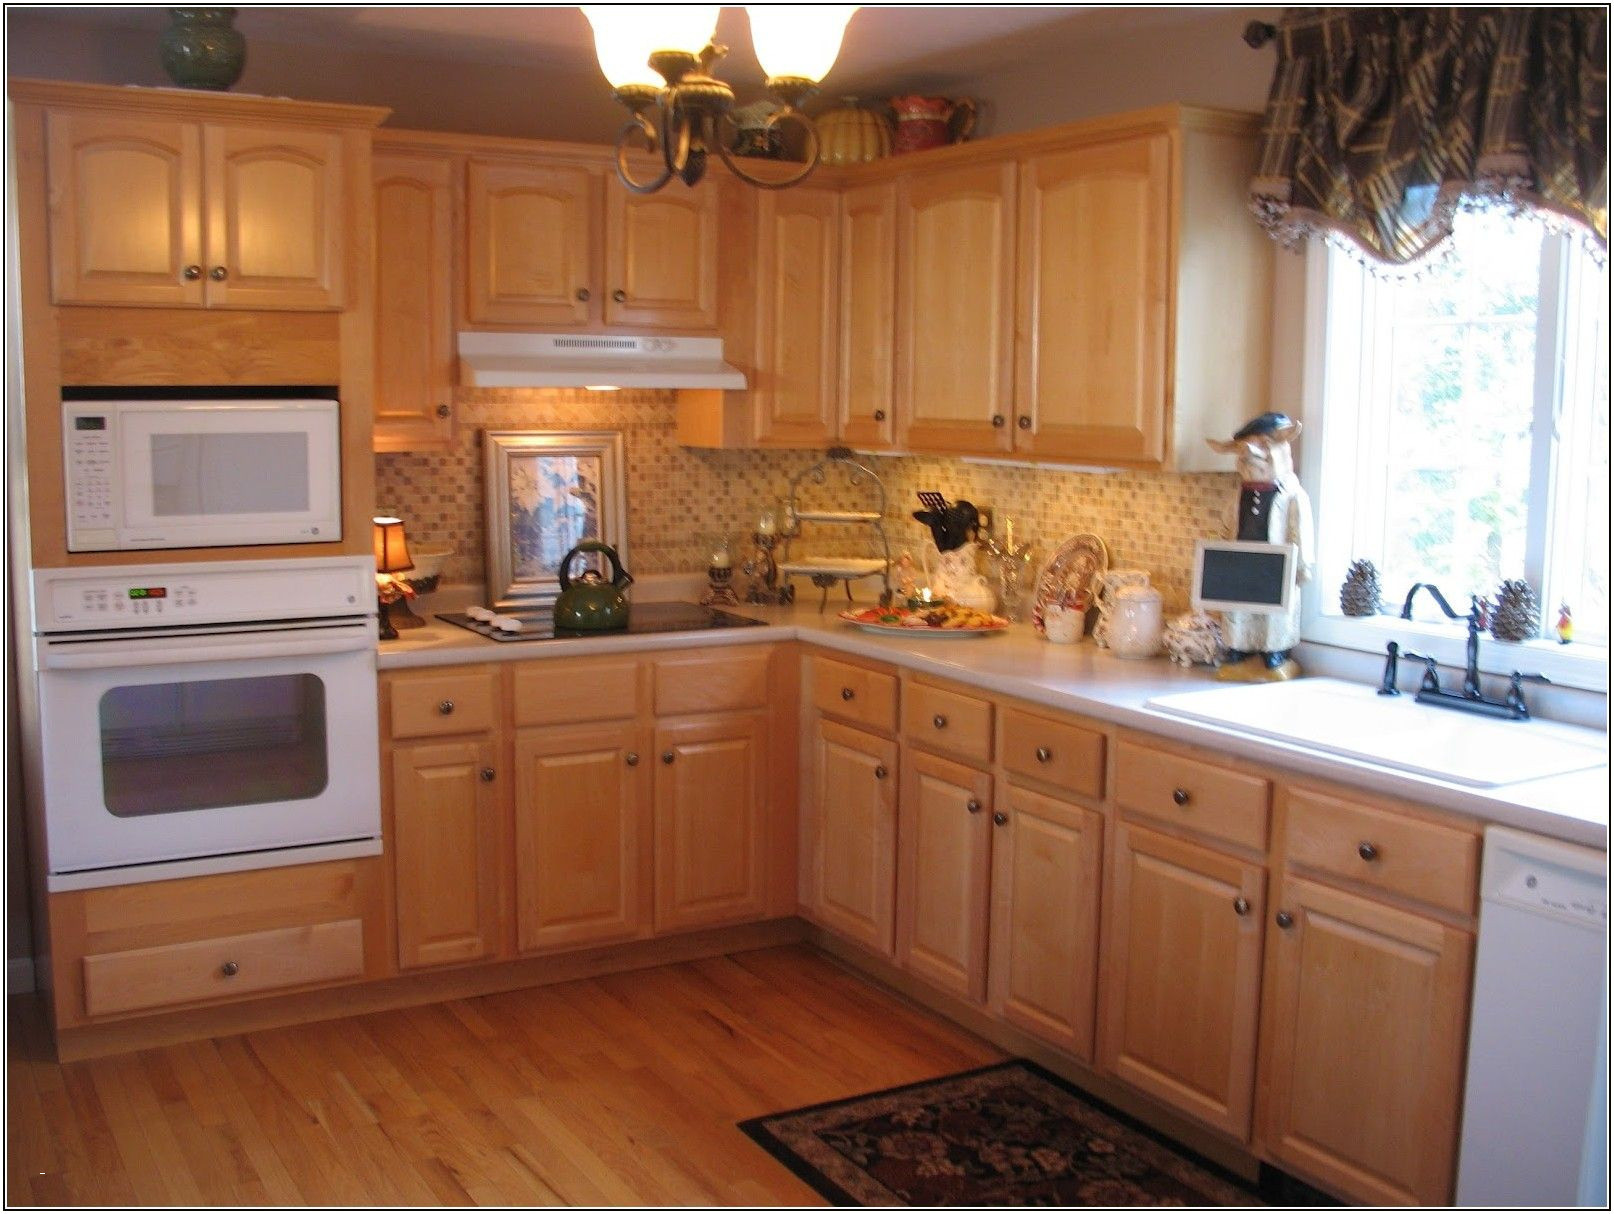 hardwood floor installation boise of unfinished wood furniture boise ivegotwoodfurniture com pertaining to unfinished wood furniture boise what color cabinets for a small kitchen luxury home depot unfinished